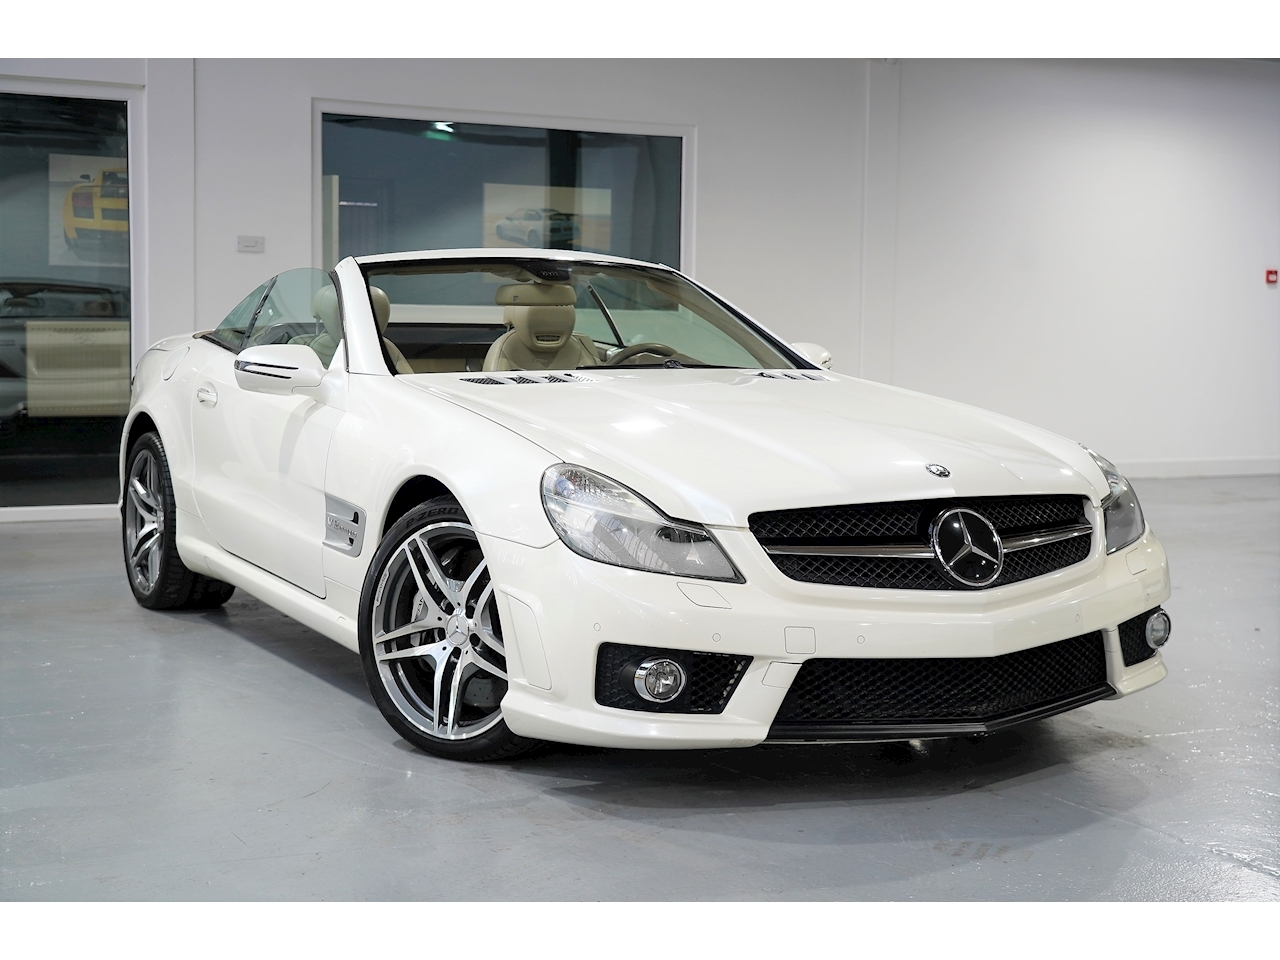 2008 Mercedes Benz SL 65 AMG 6.0 V12 - Facelift - Pearl White - Left Hand Drive (LHD)